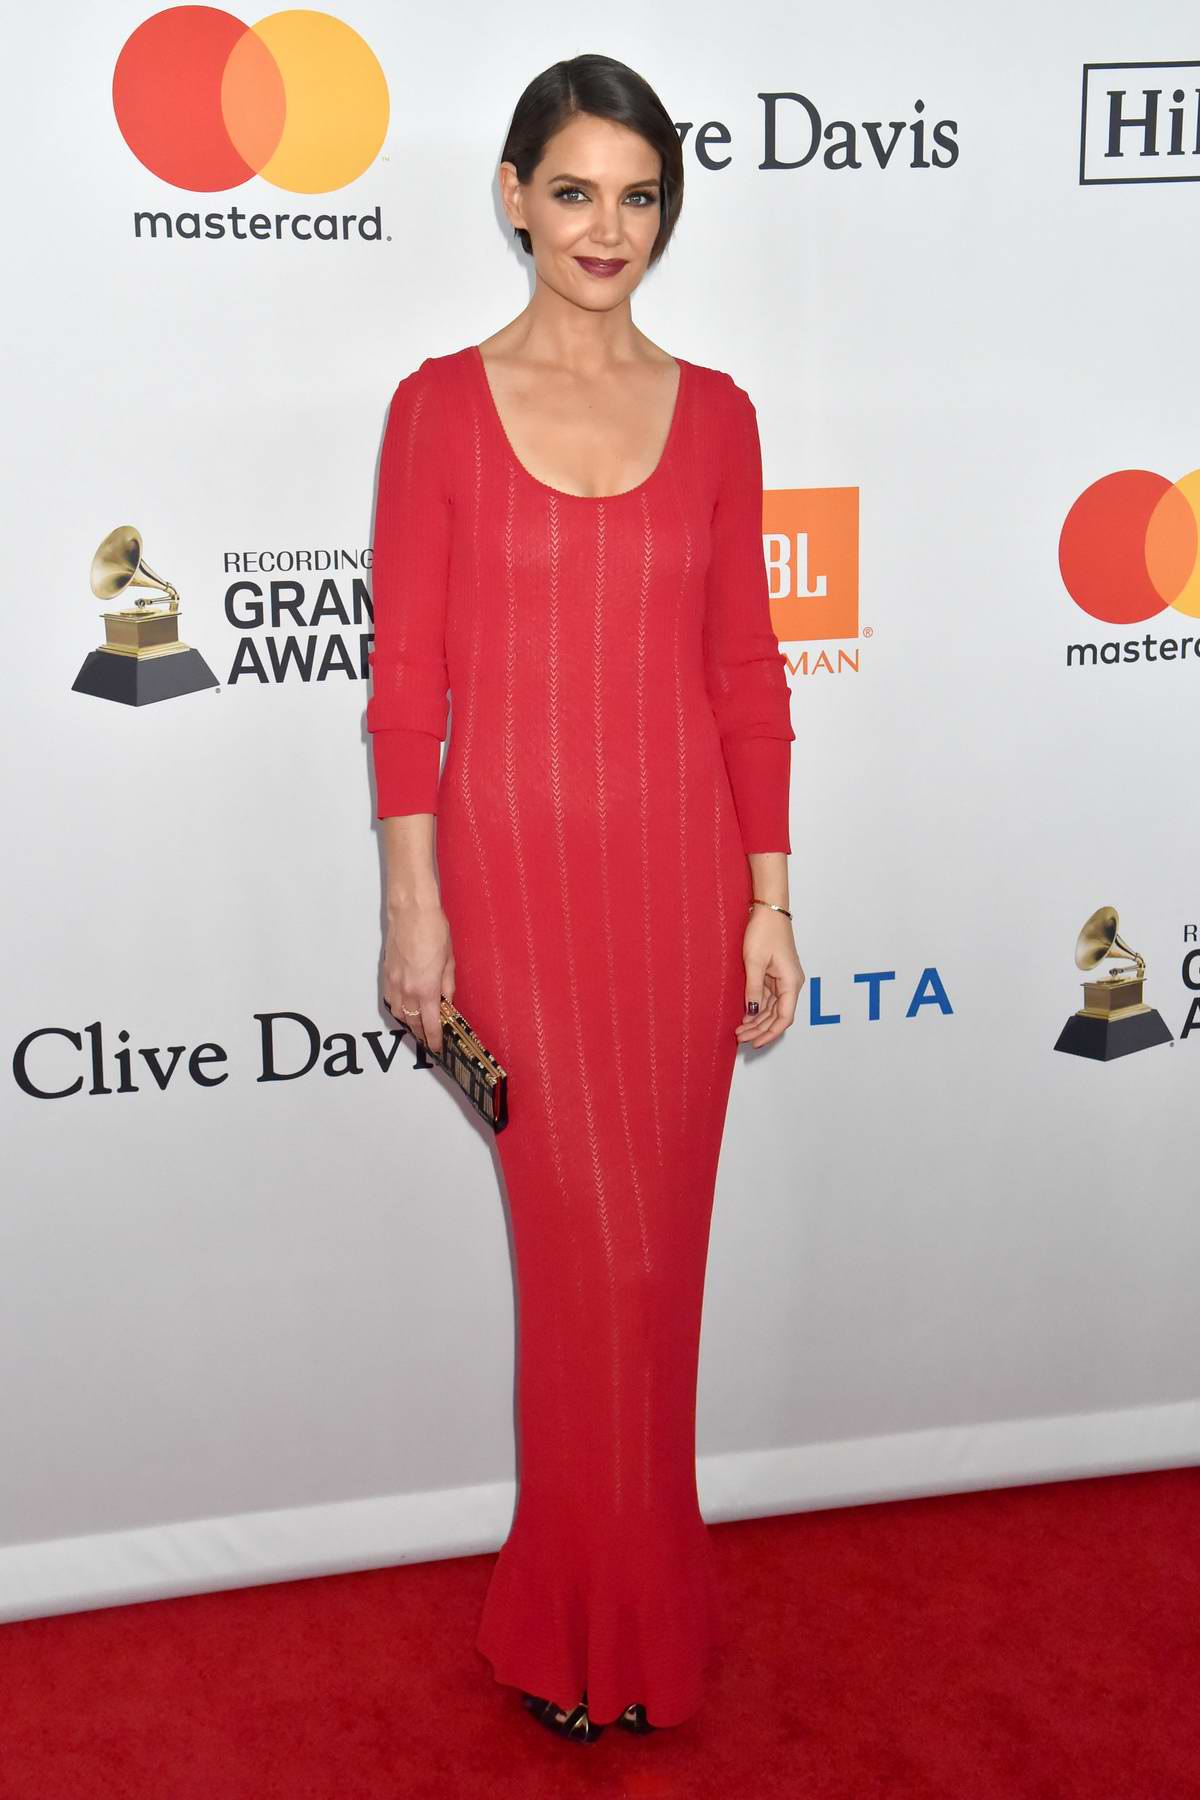 Katie Holmes at the Clive Davis and Recording Academy Pre-Grammy Gala in New York City